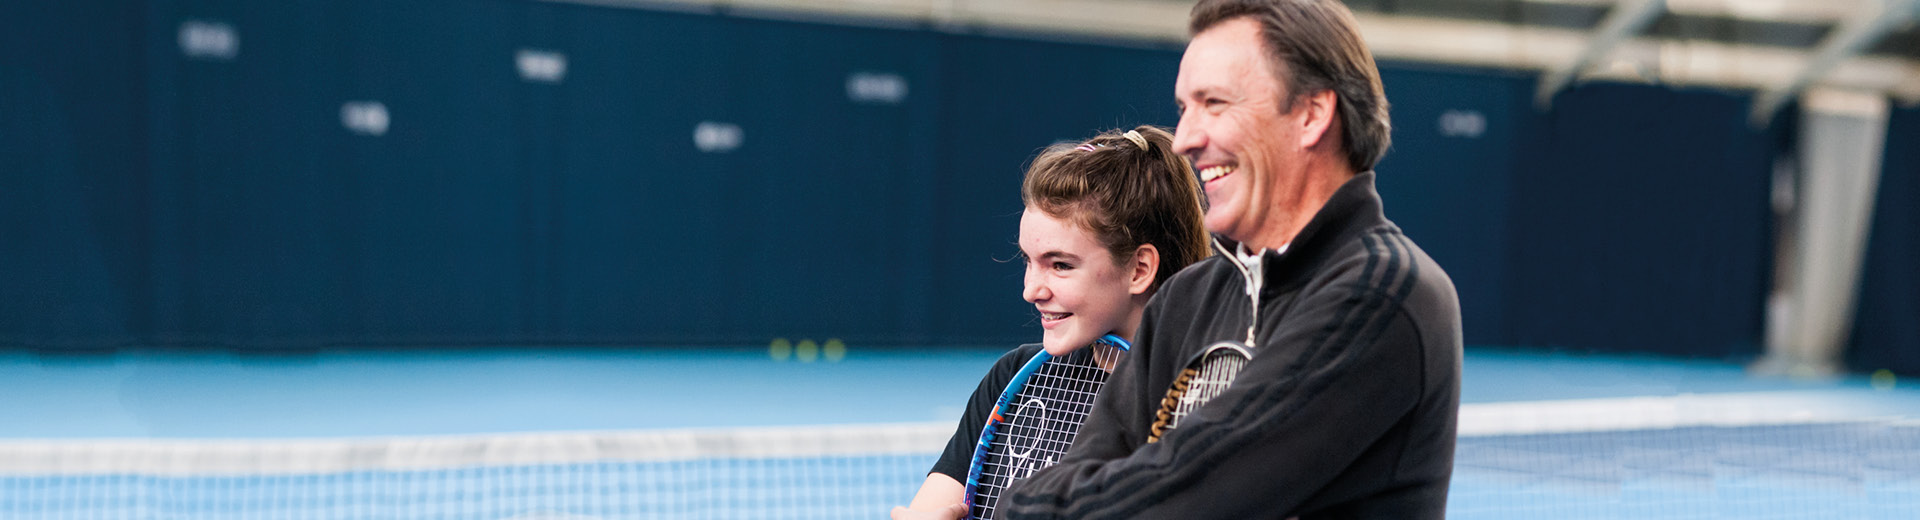 How to support your child in tennis